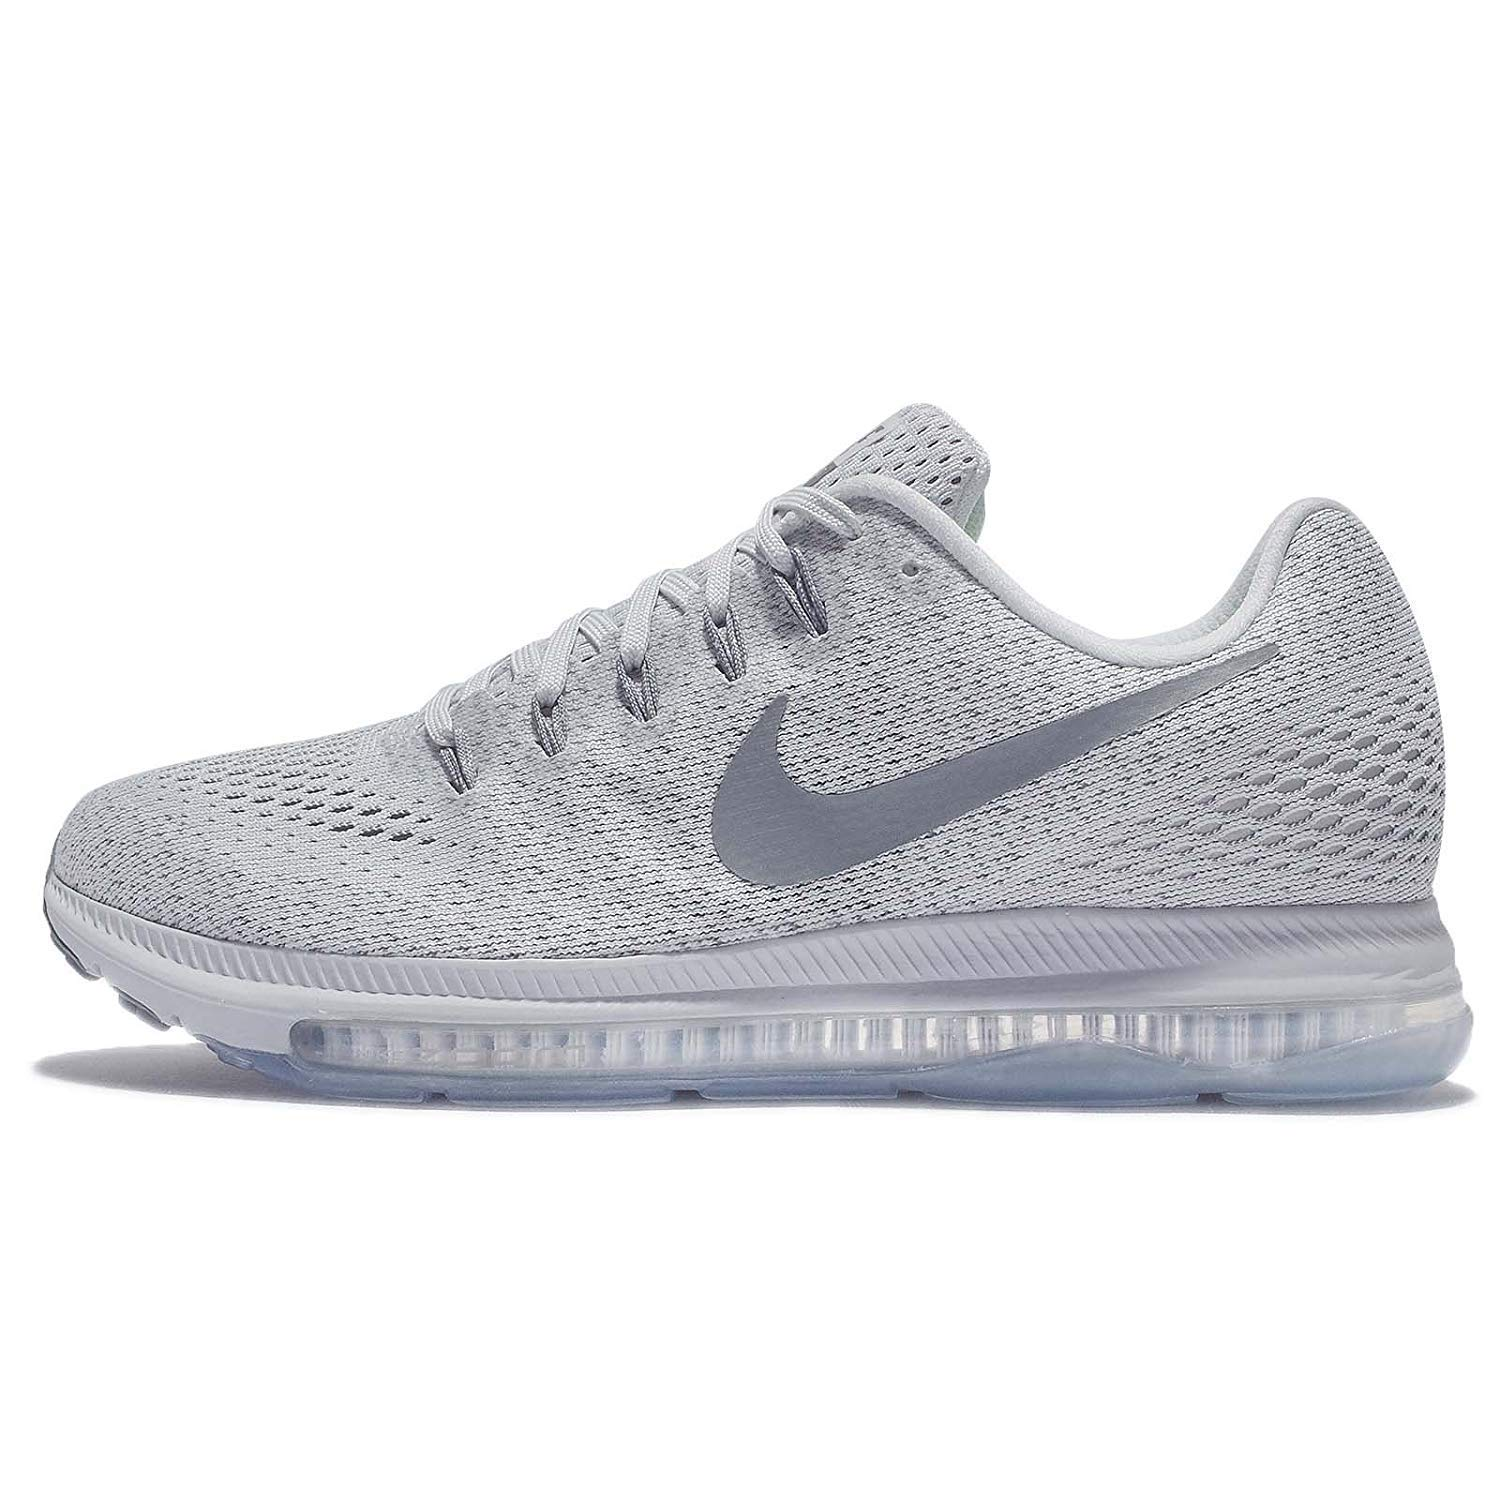 uk availability 8b1a2 1f35d Galleon - Nike Womens WMNS Zoom All Out Low, Pure PlatinumCool Grey, 8.5  M US